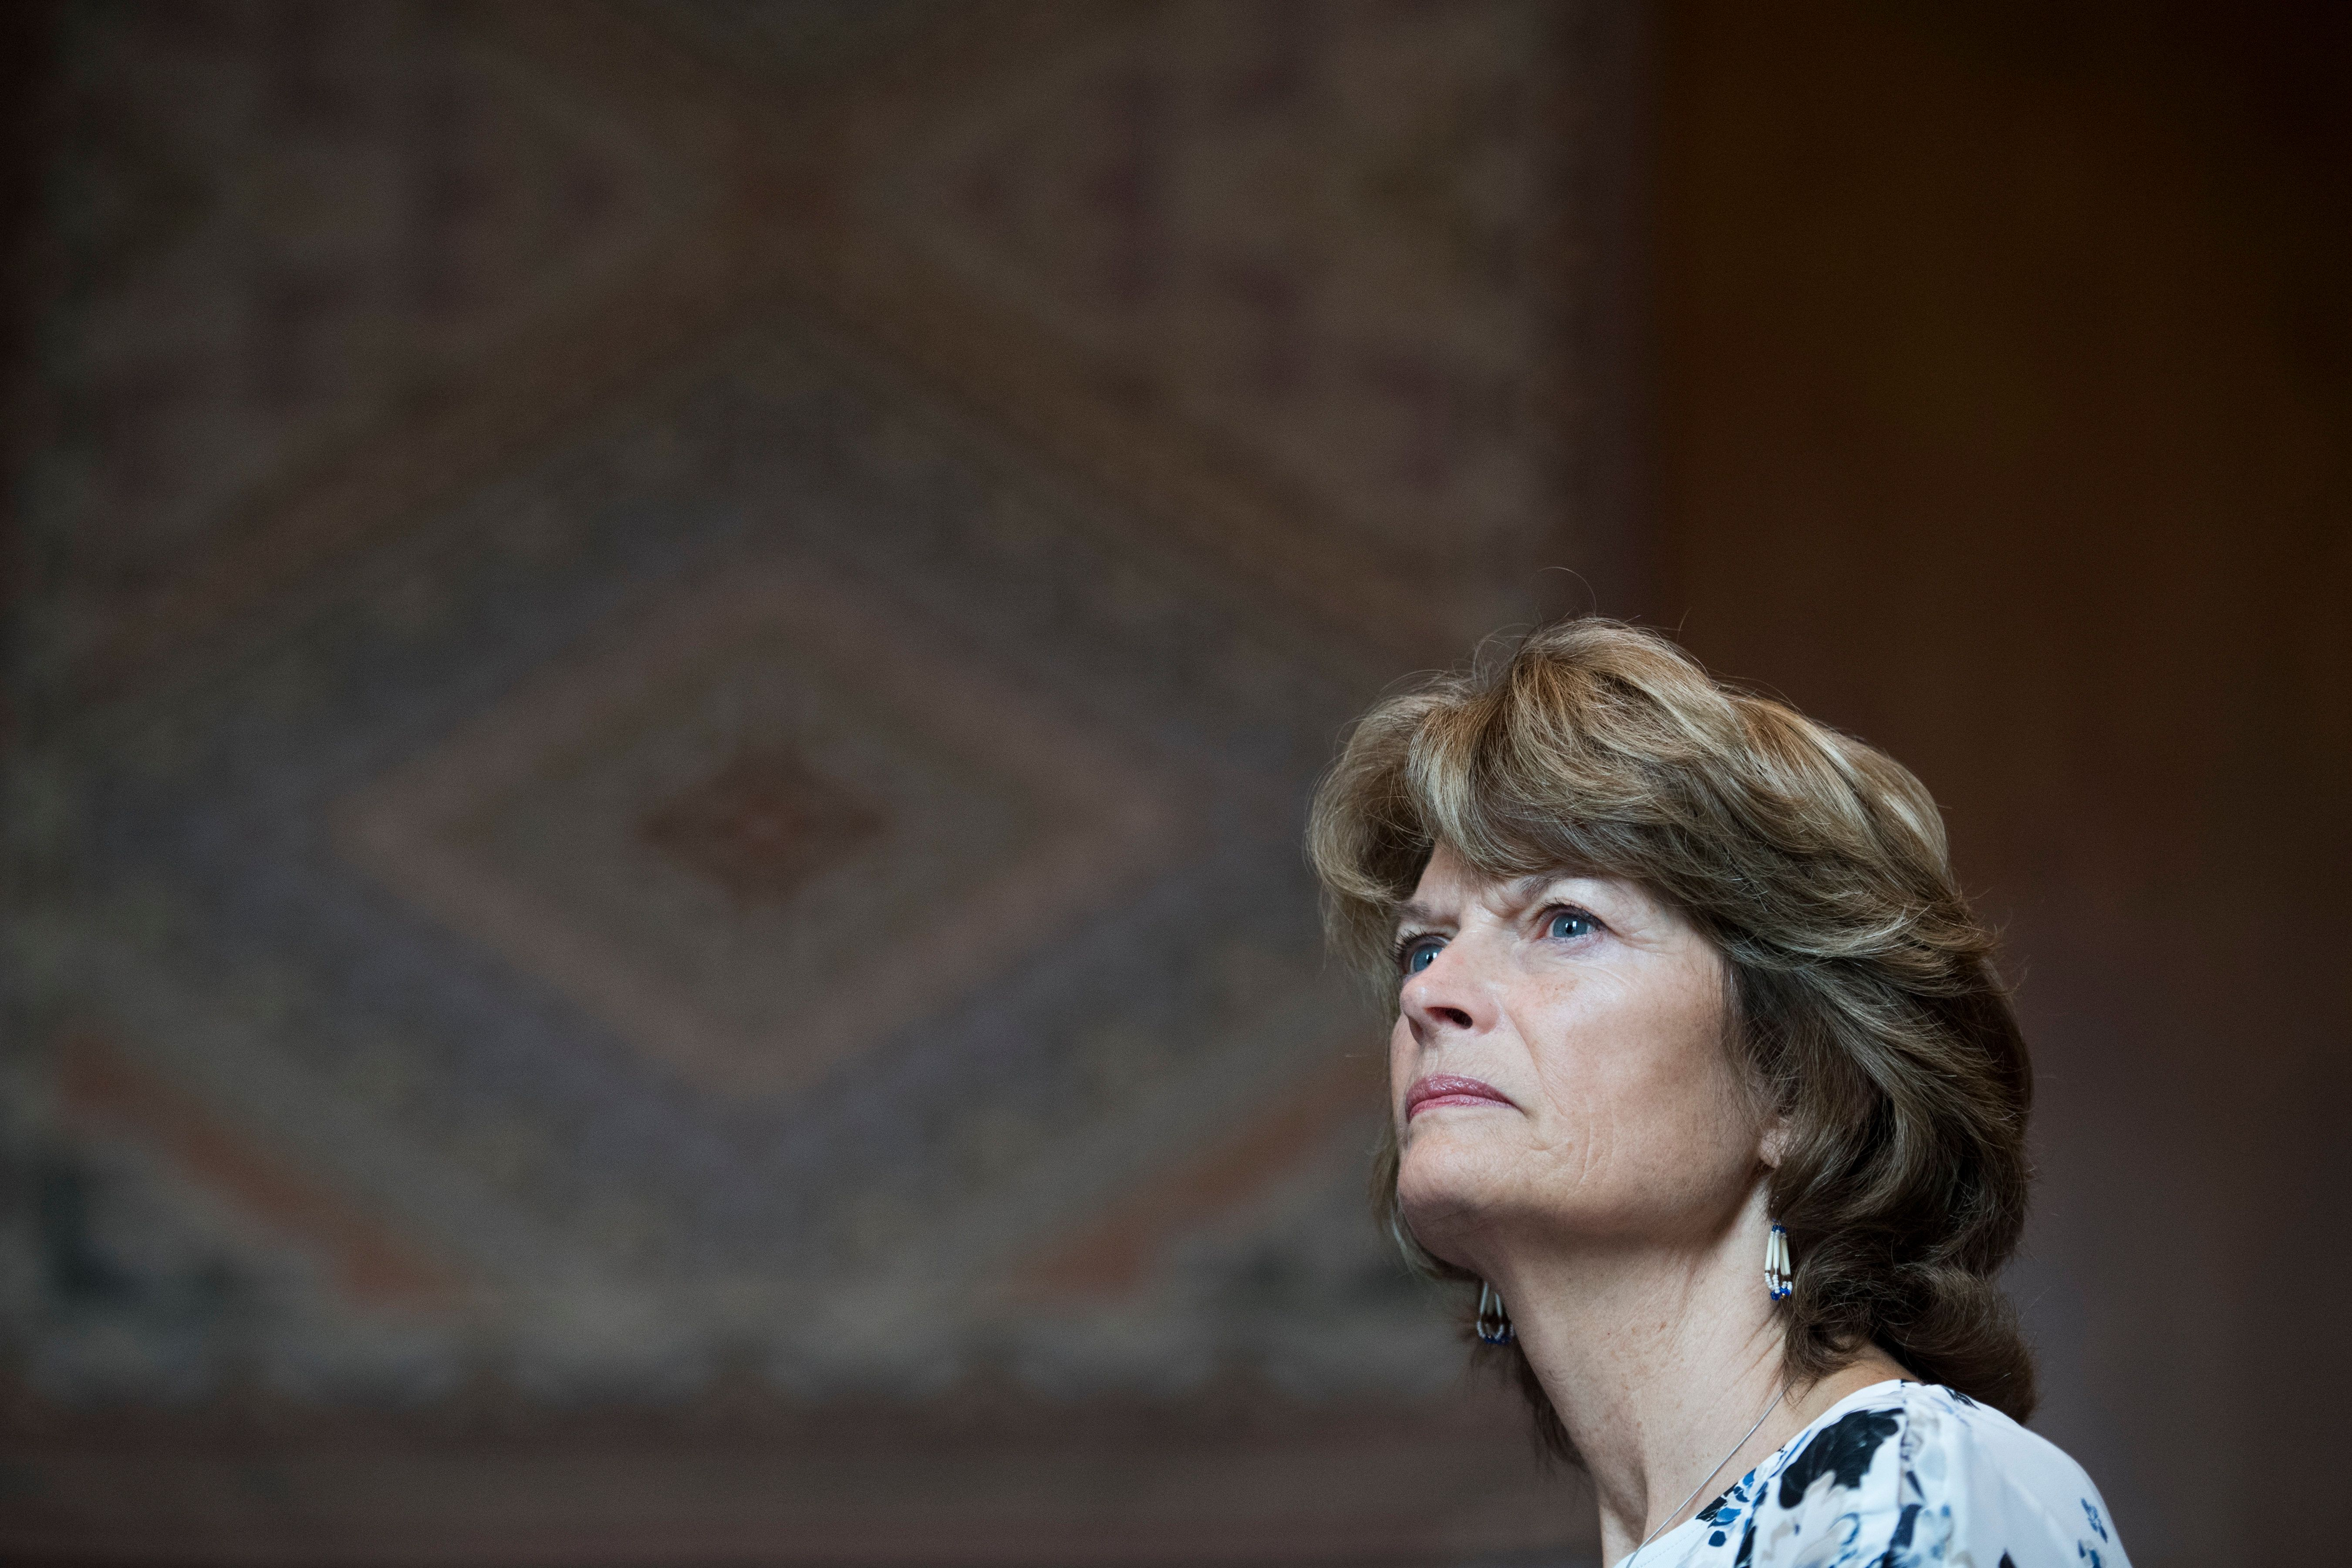 UNITED STATES - SEPTEMBER 12: Sen. Lisa Murkowski, R-Alaska, speaks during the Tribal Unity Impact Days hosted by the National Congress of American Indians in Dirksen Building on September 12, 2018. (Photo By Tom Williams/CQ Roll Call)